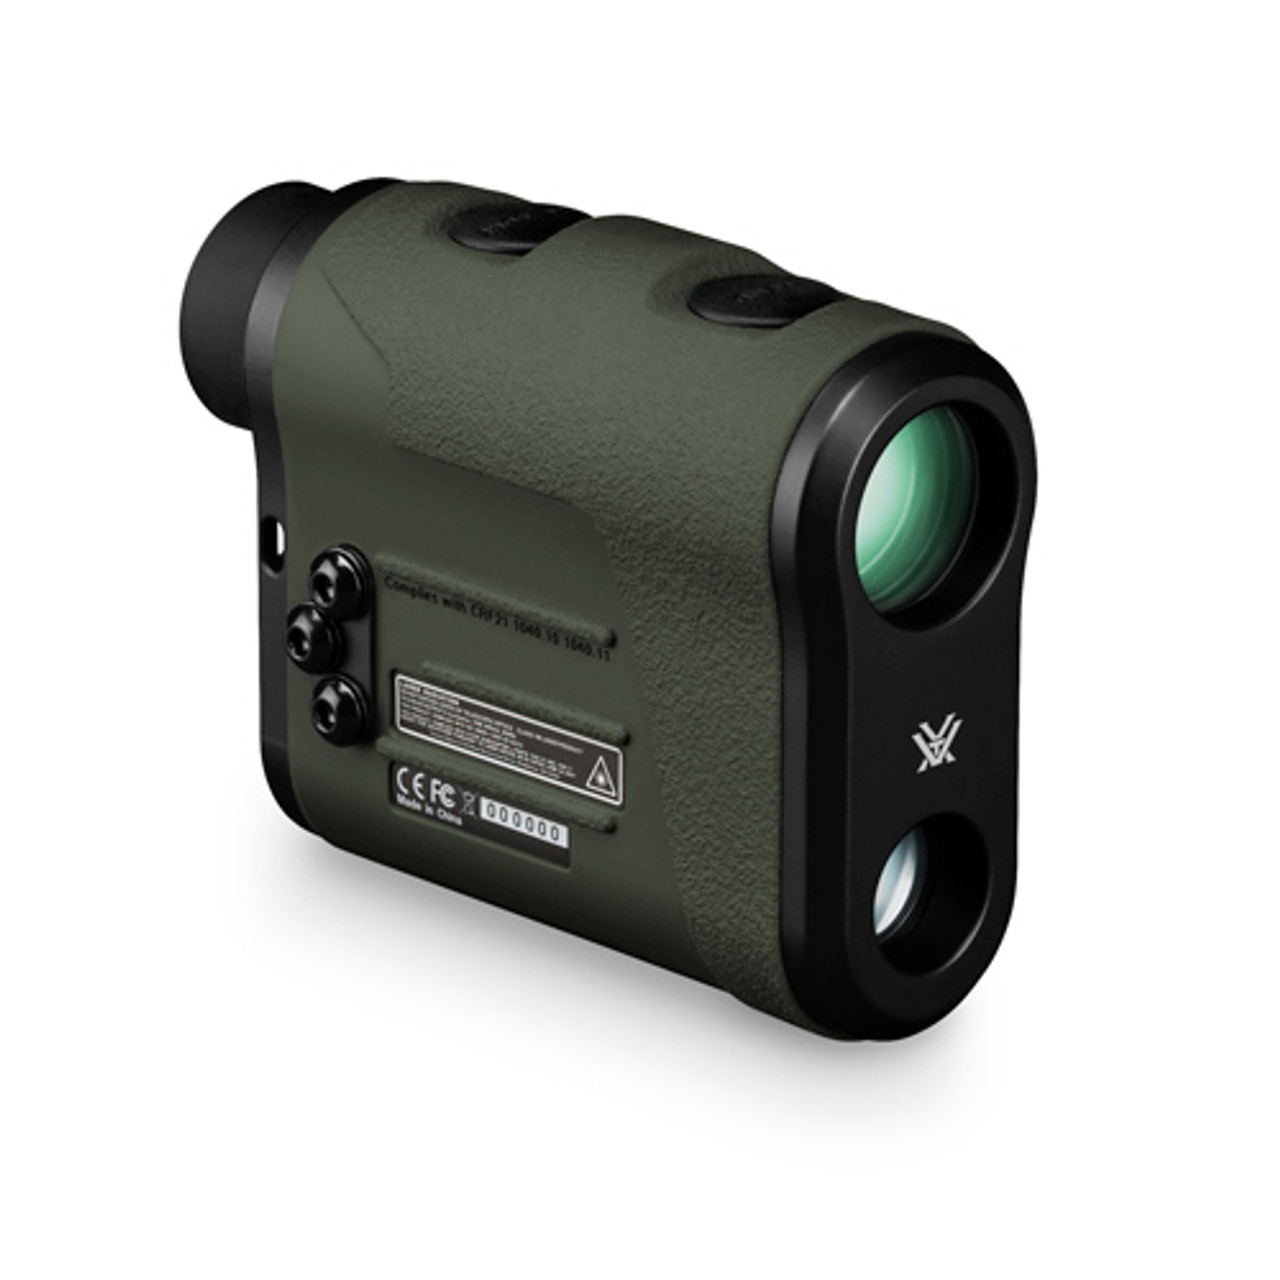 Vortex Ranger 1800 Rangefinder with a lifetime warranty , targets your buying price and long distance objects.